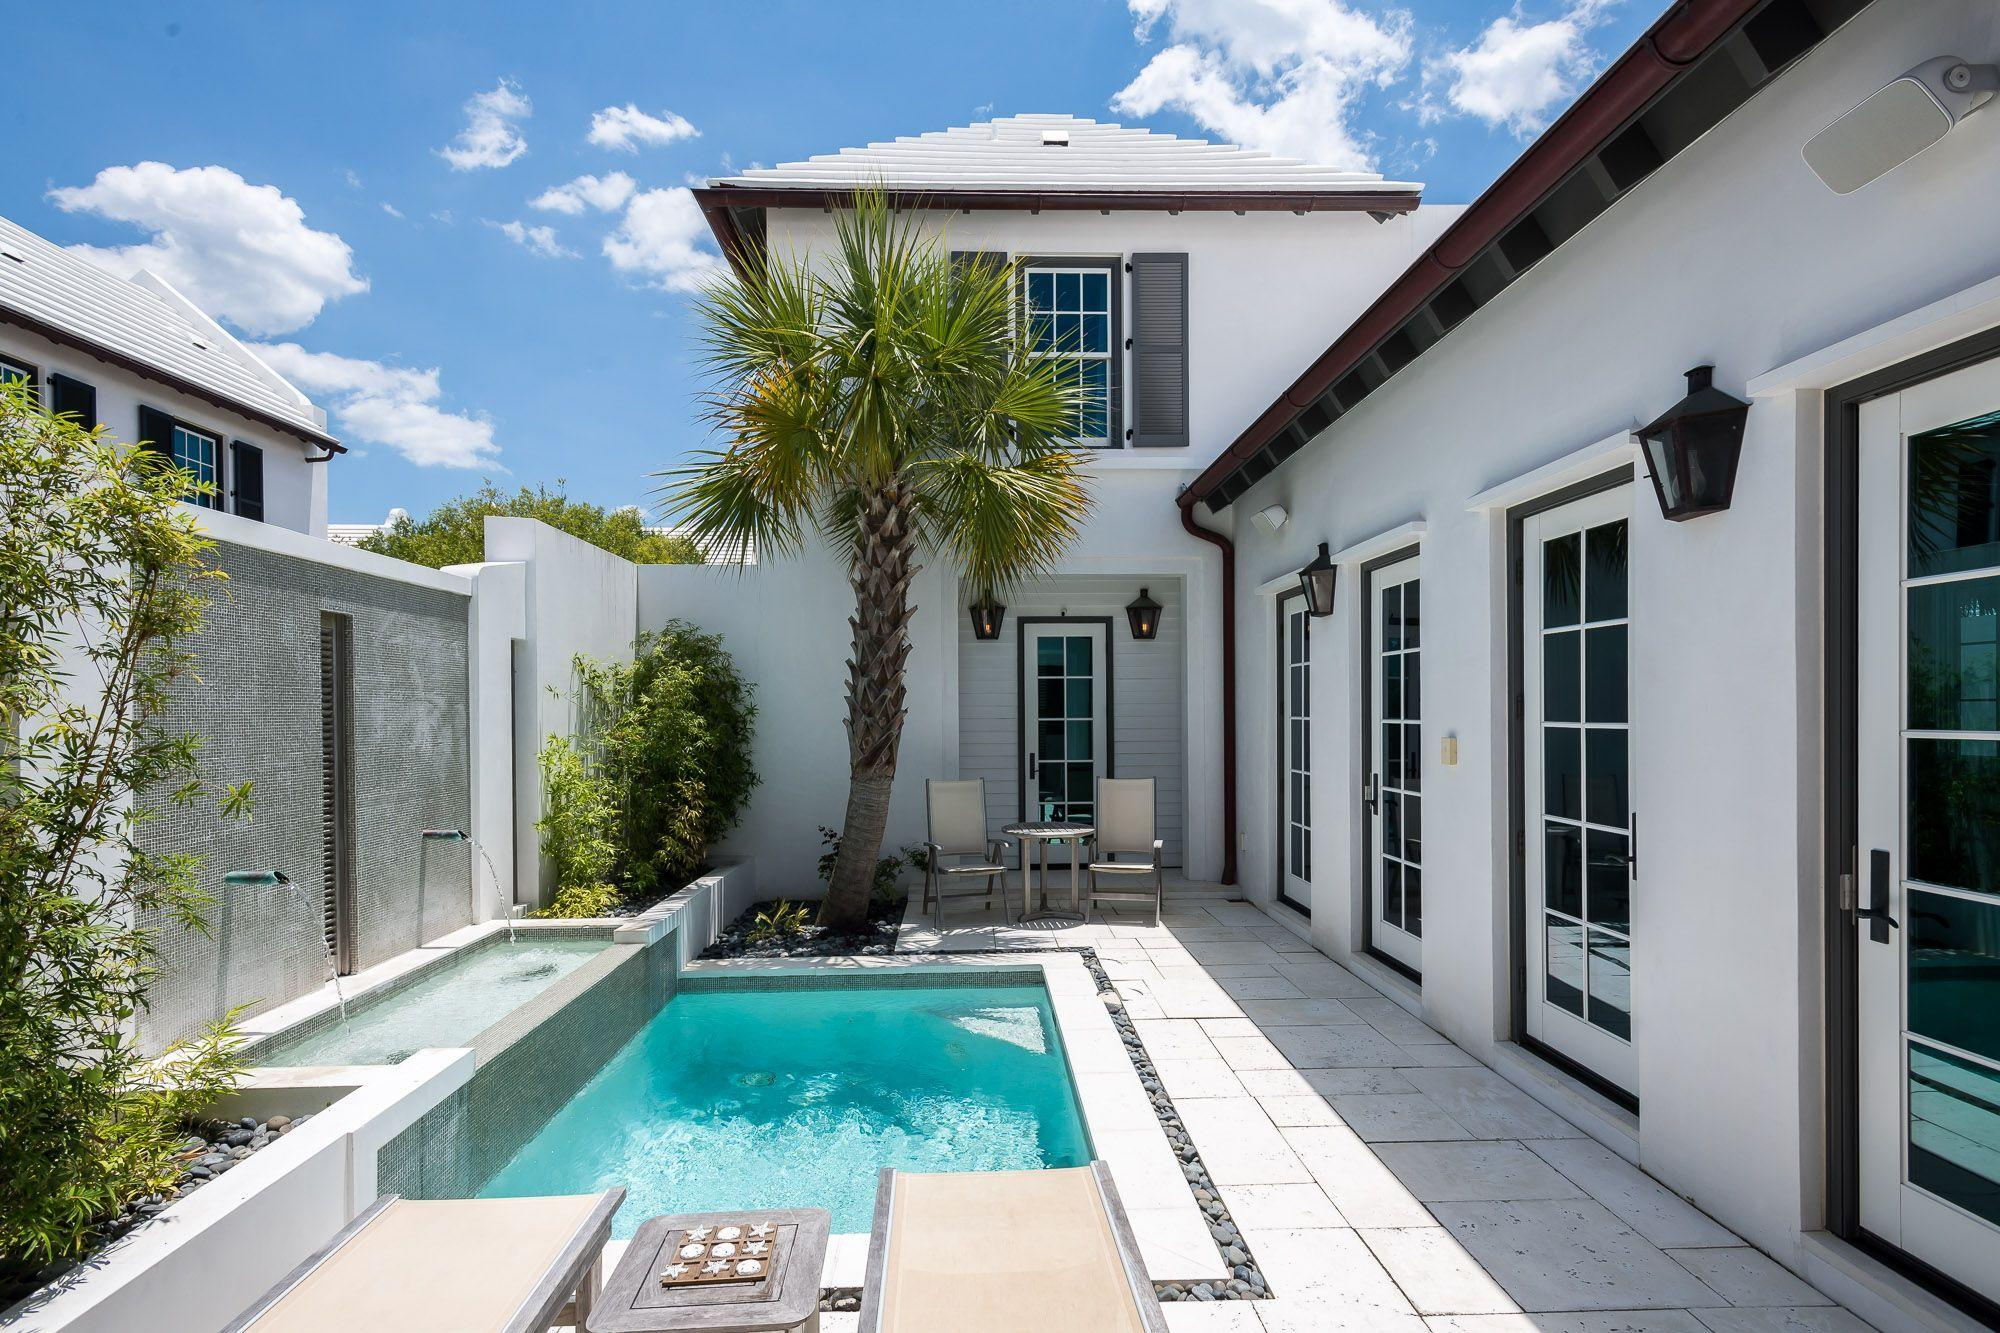 This four-bedroom Bermuda inspired freestanding home is ideally located on the iconic Charles Street